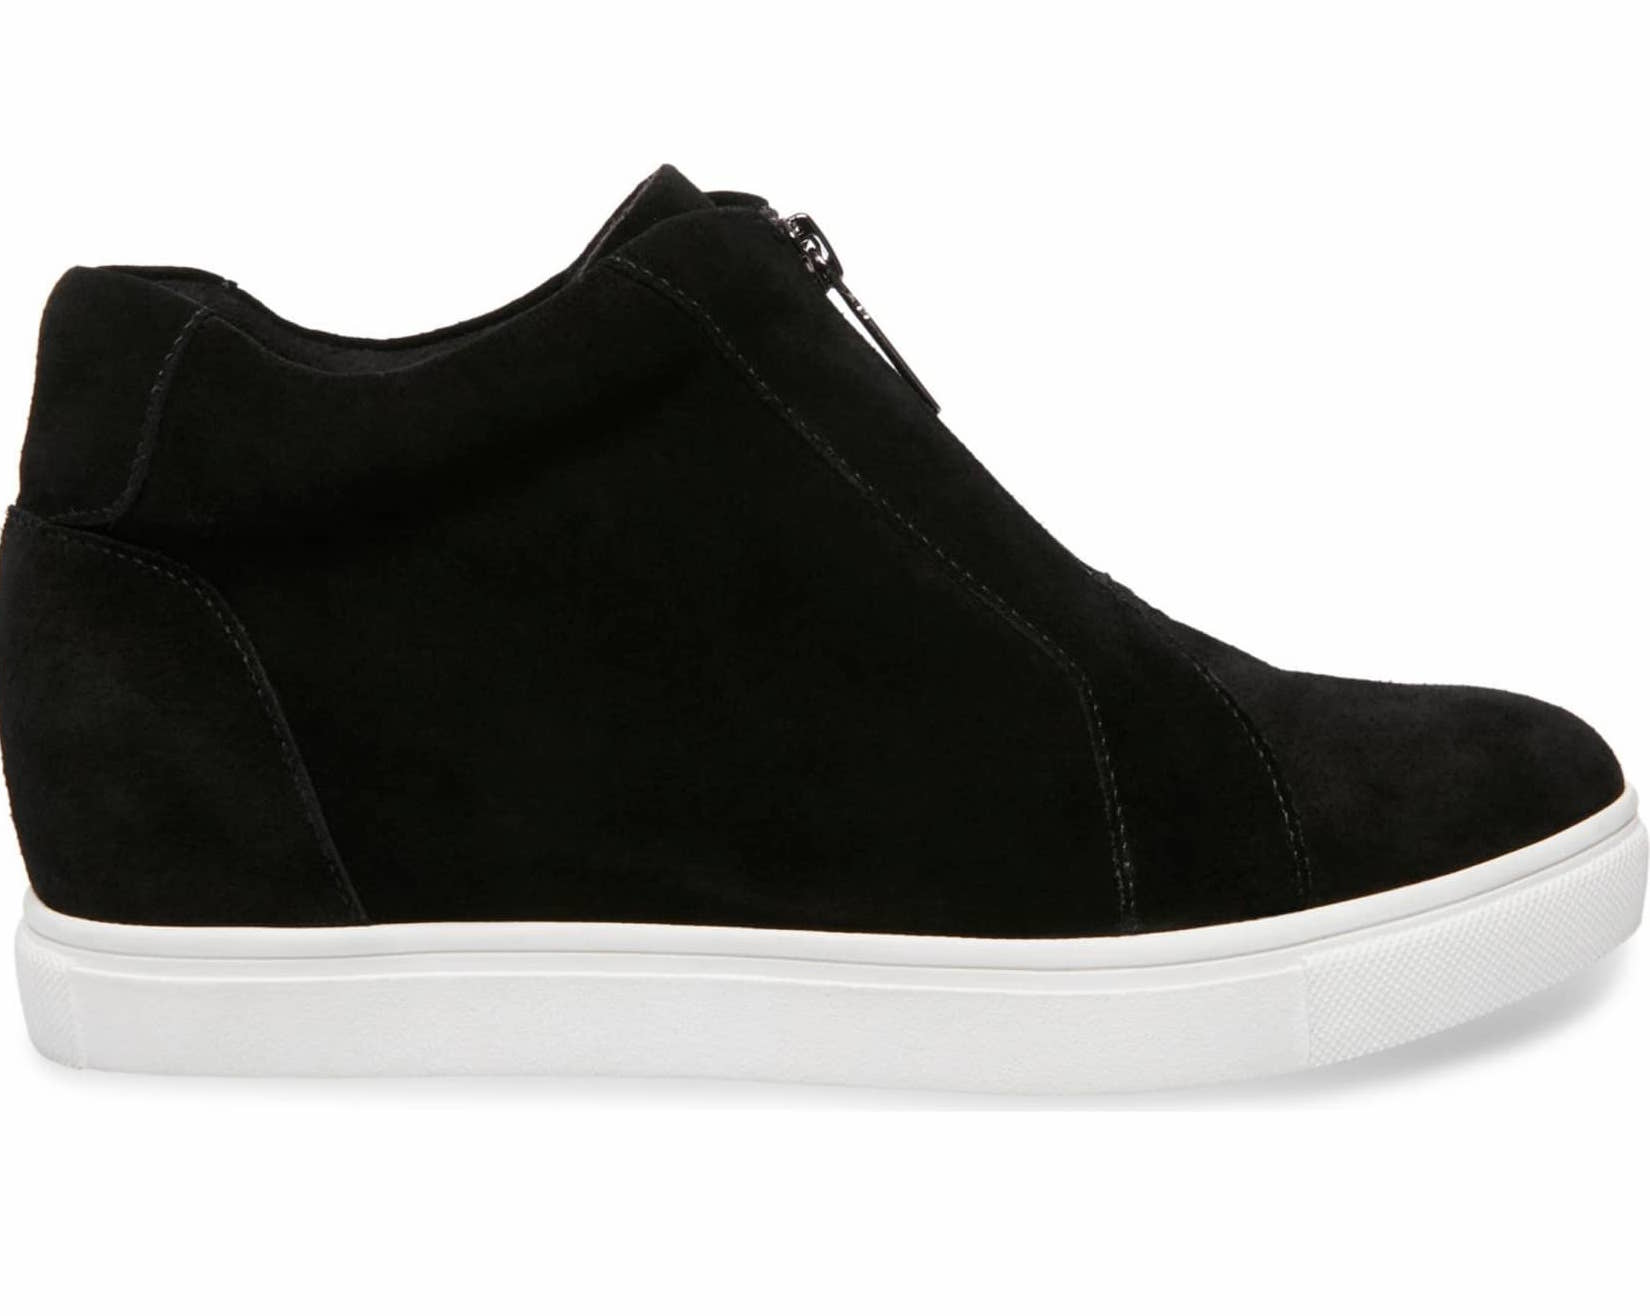 f3dc6b74c0be See It  Grab the Blondo Glenda Waterproof Sneaker Bootie at Nordstrom for  only  100 in black